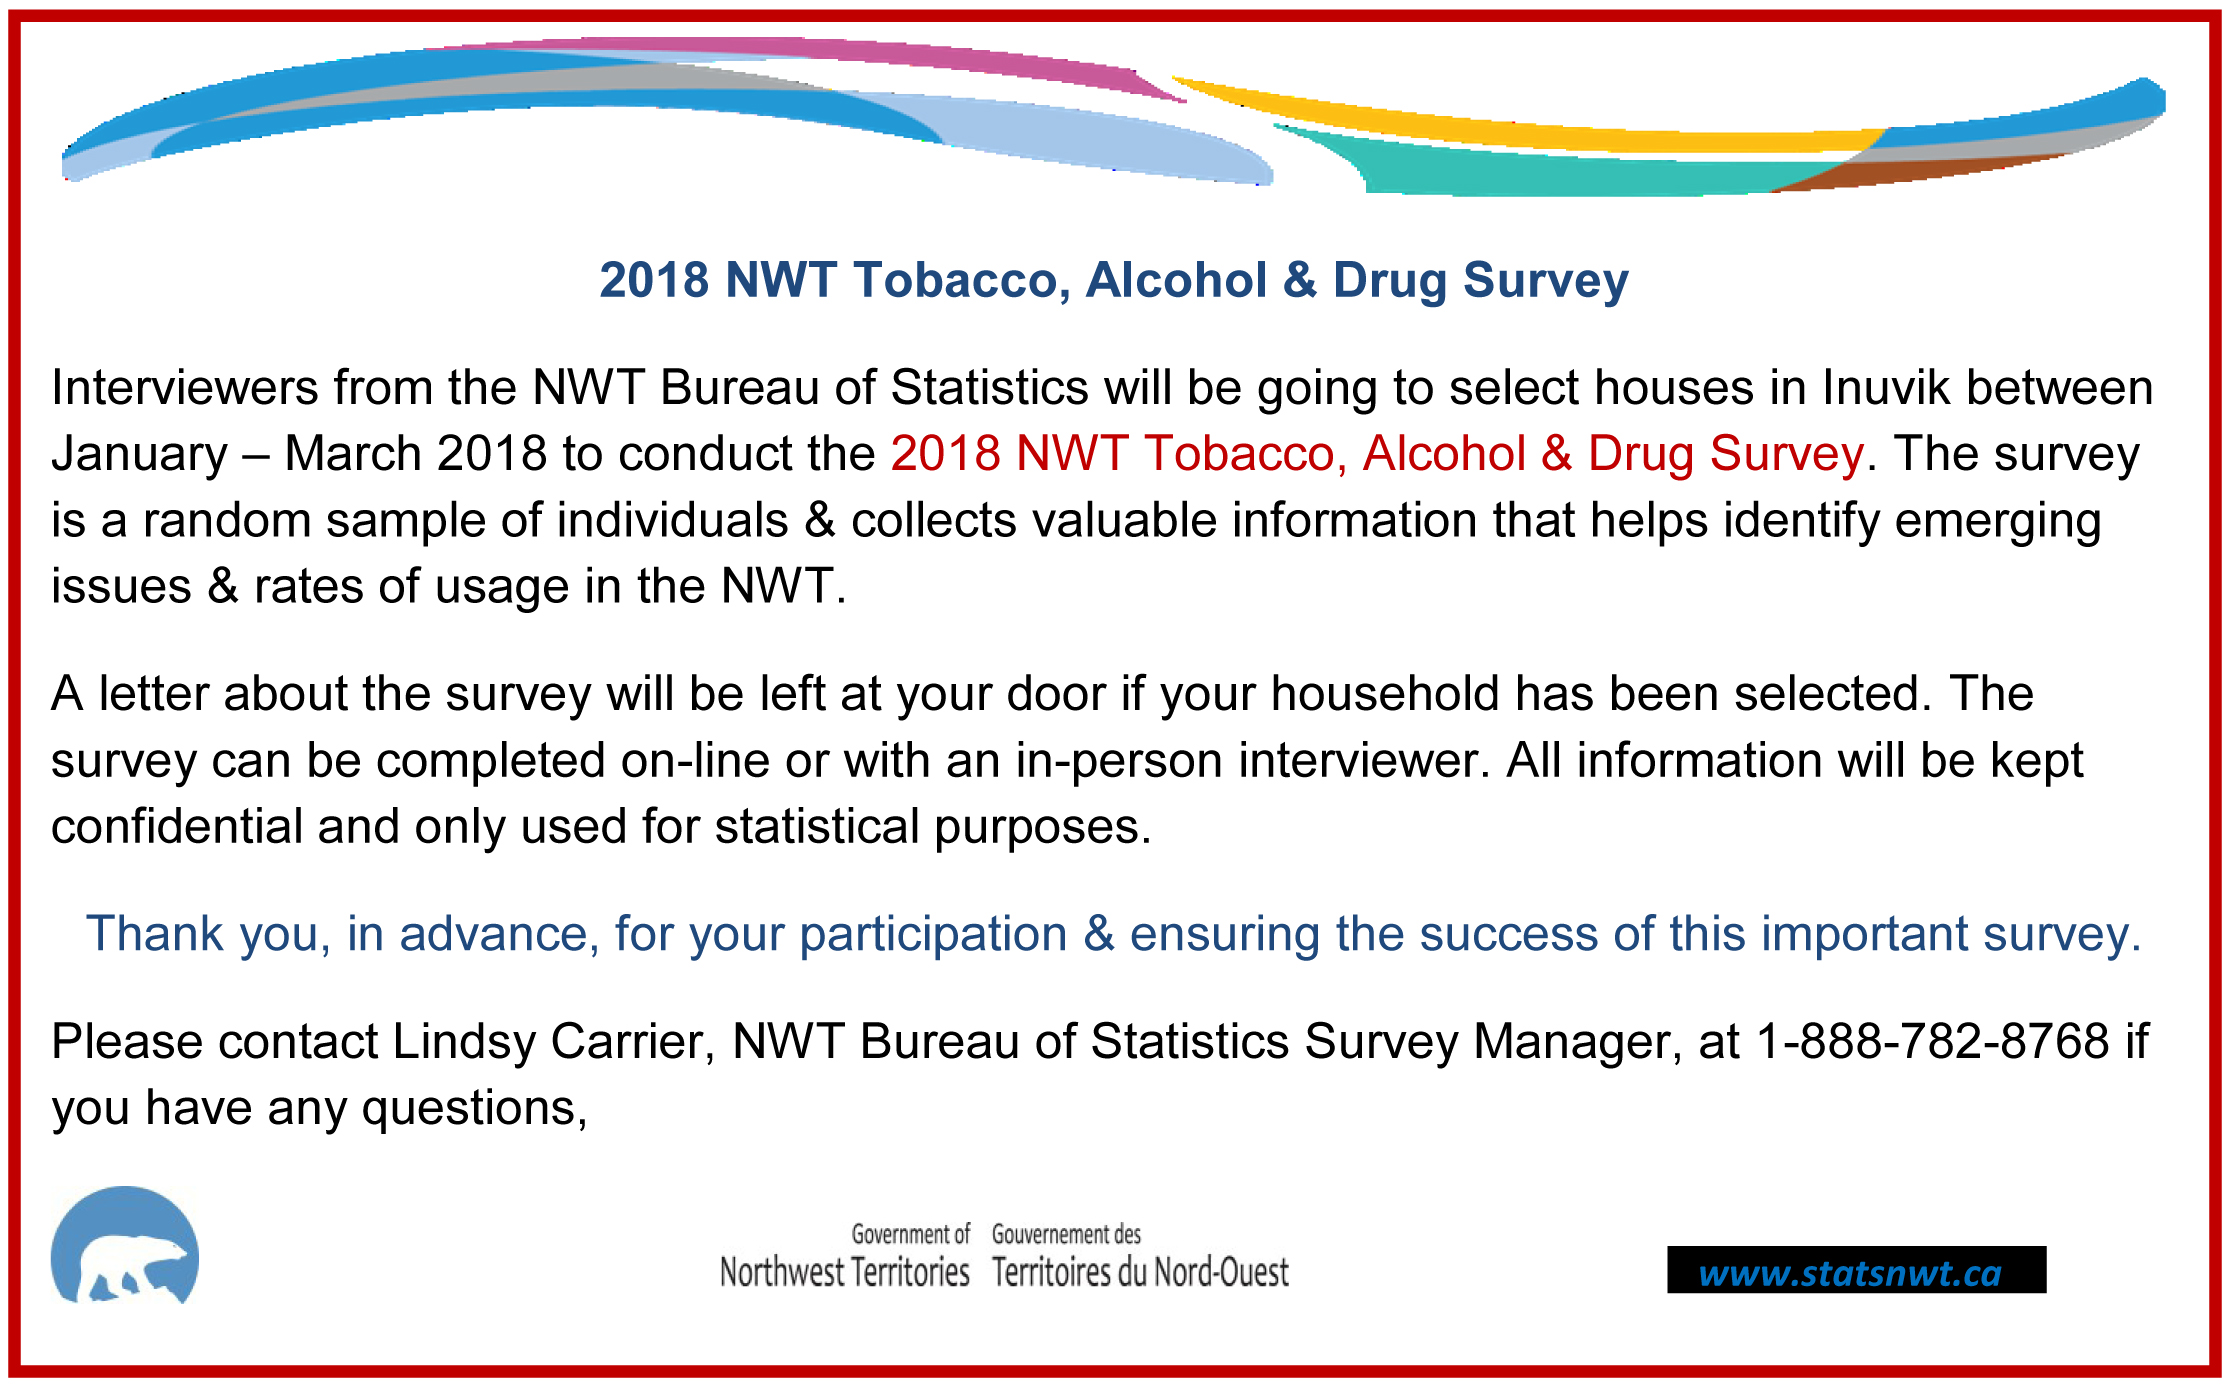 2018 NWT Tobacco, Alcohol & Drug Survey